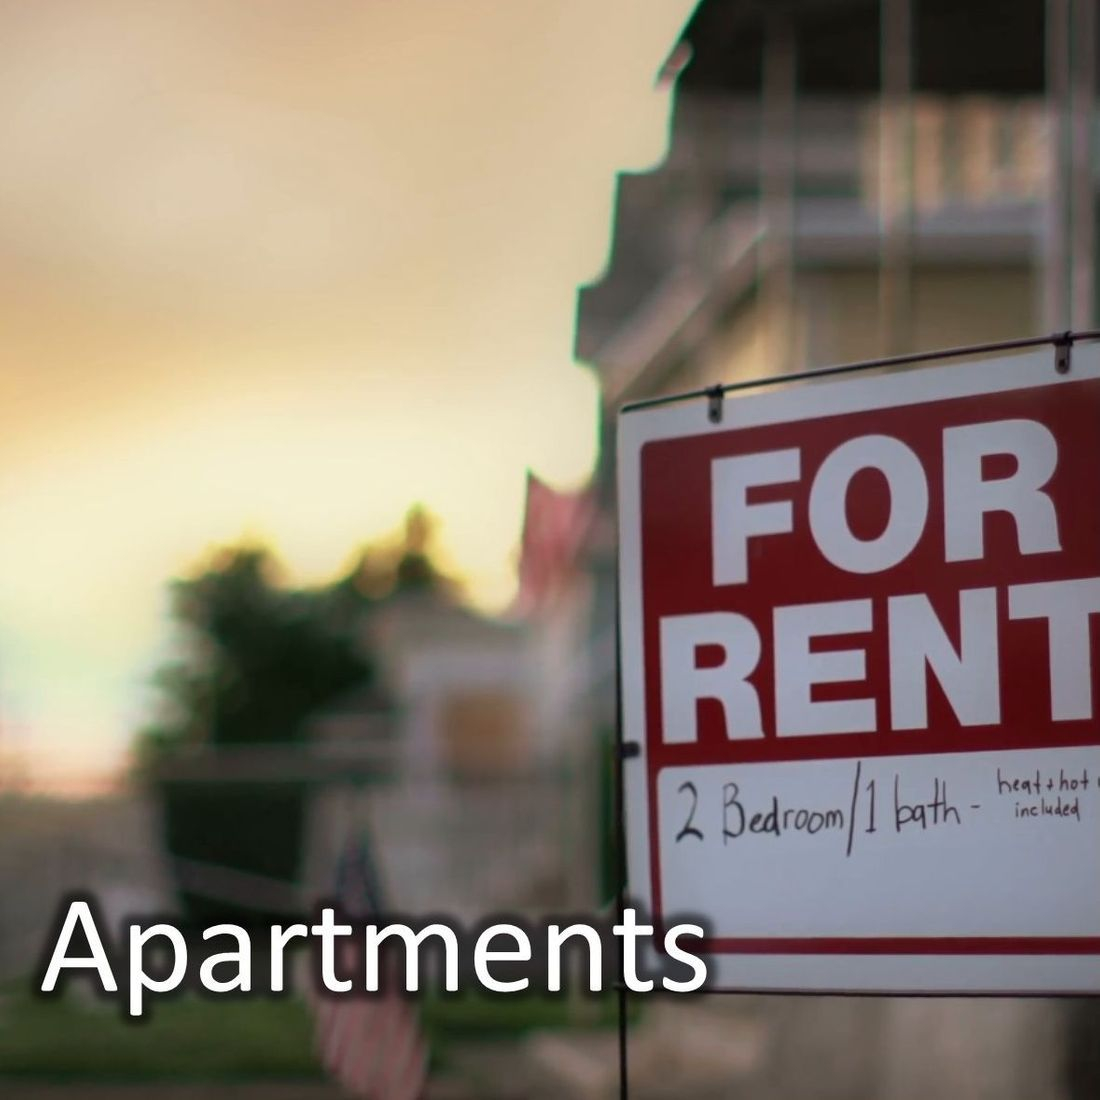 Apartments and Housing for Rent